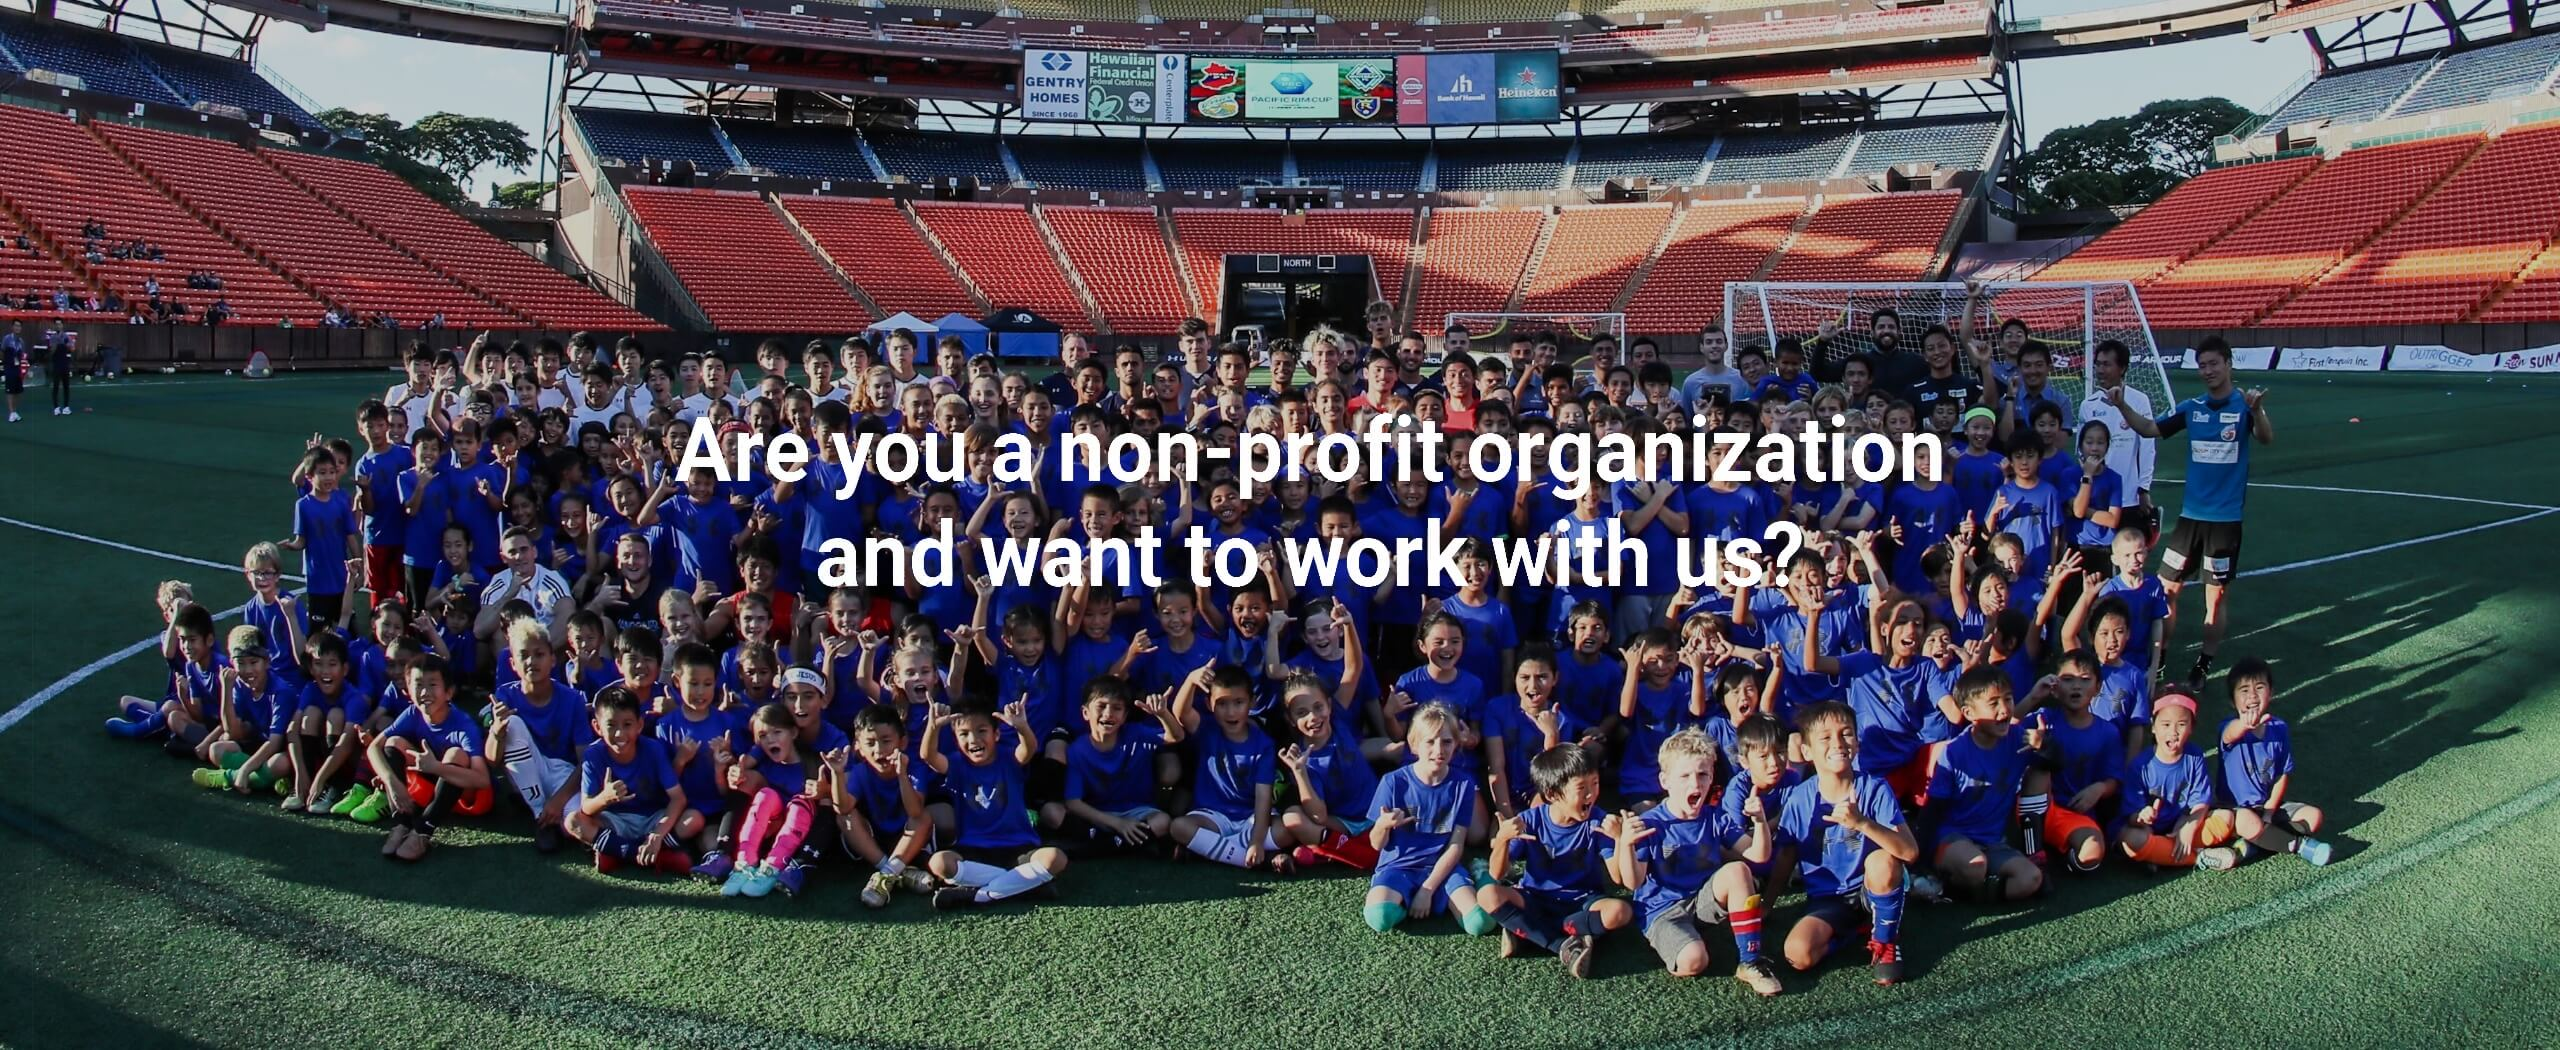 Are you a non-profit organization and want to work with us?